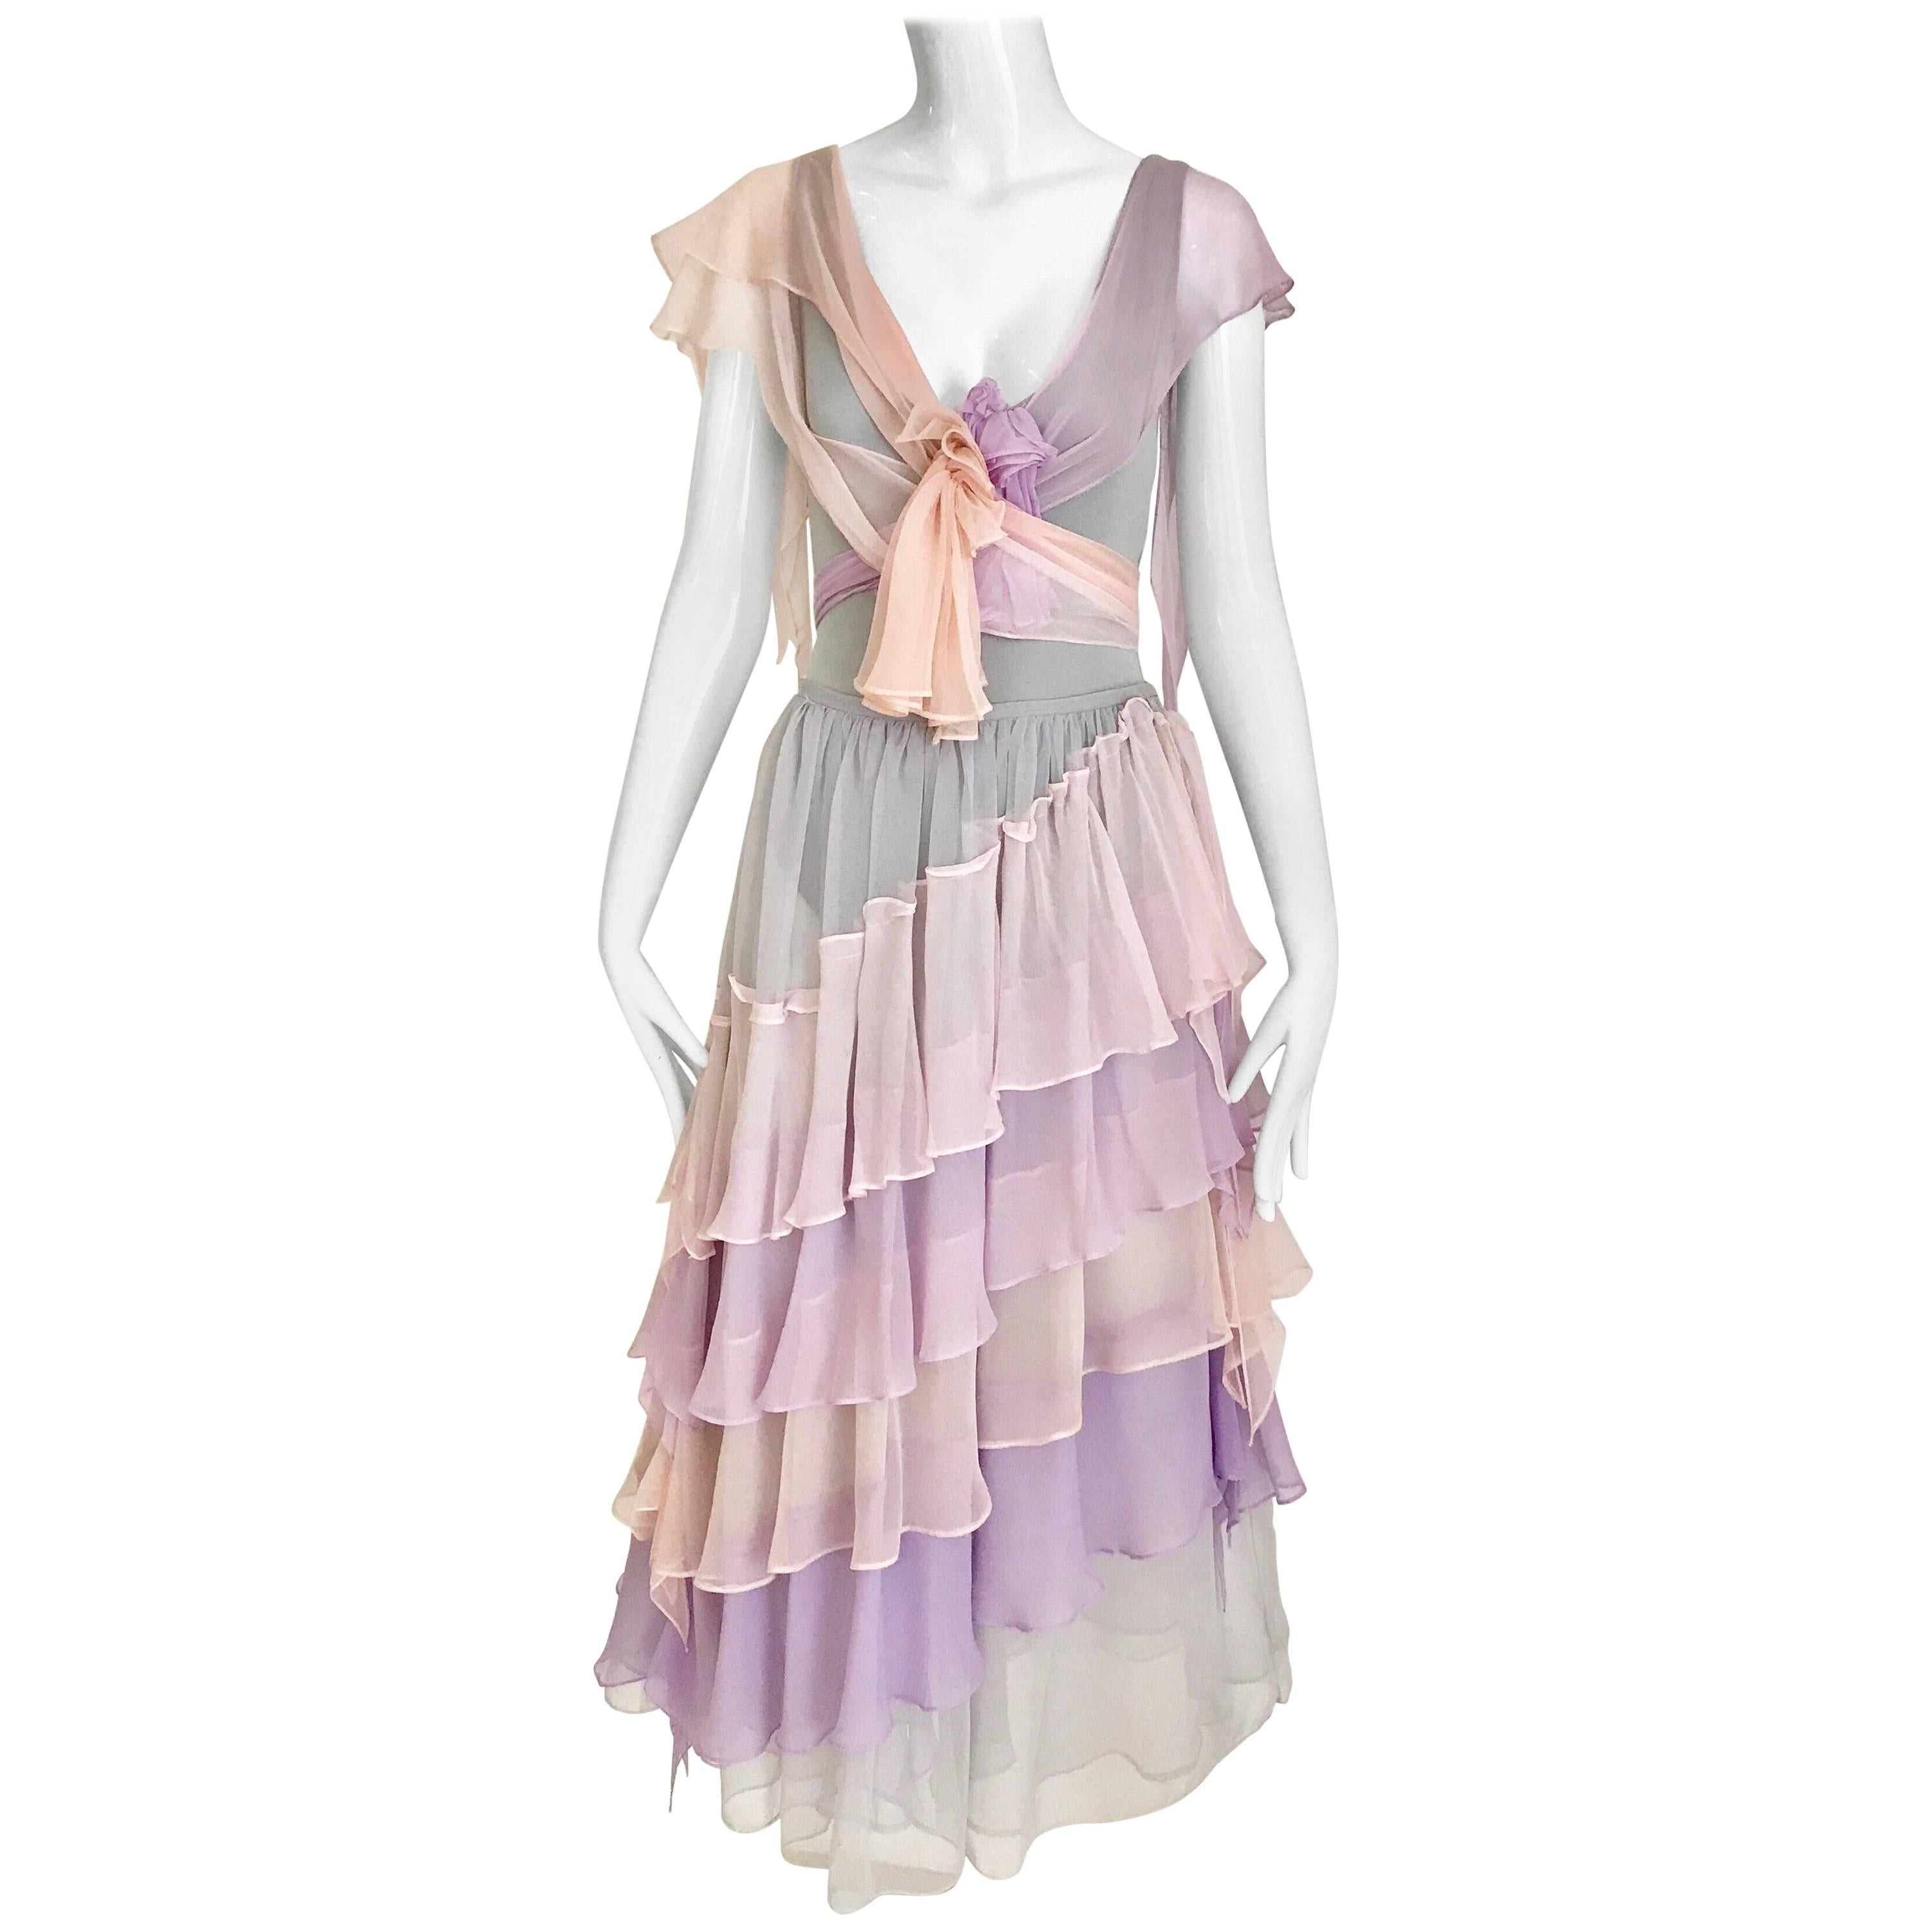 Giorgio di Sant'Angelo Lavender and Pink Bodysuit Skirt Set, 1970s